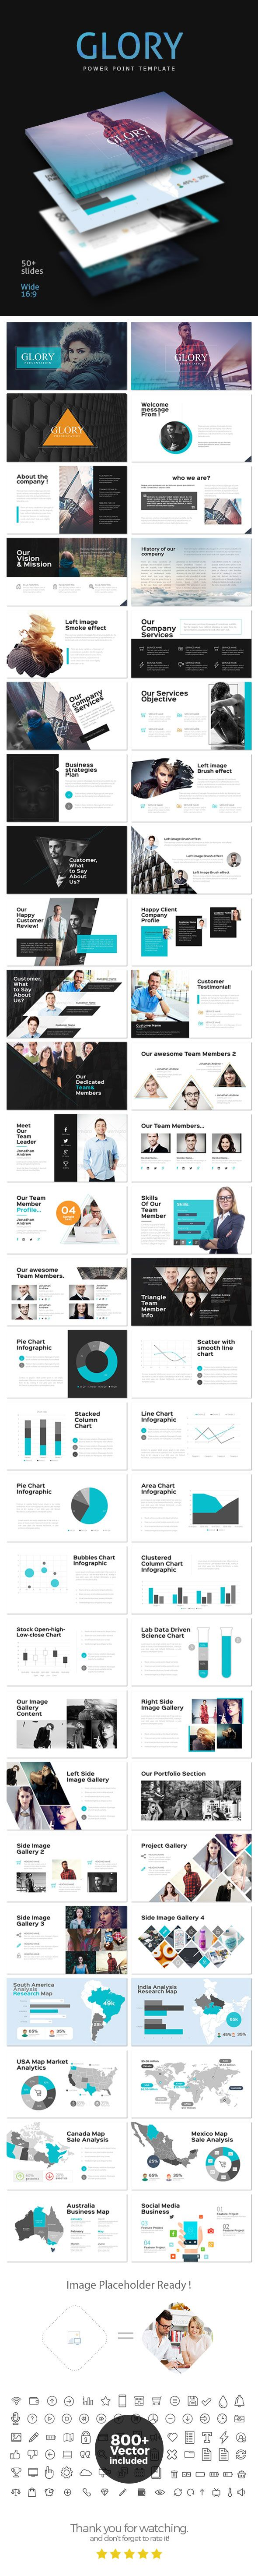 Glory PowerPoint Template - Business #PowerPoint #Templates Download here: https://graphicriver.net/item/glory-powerpoint-template/17118326?ref=alena994